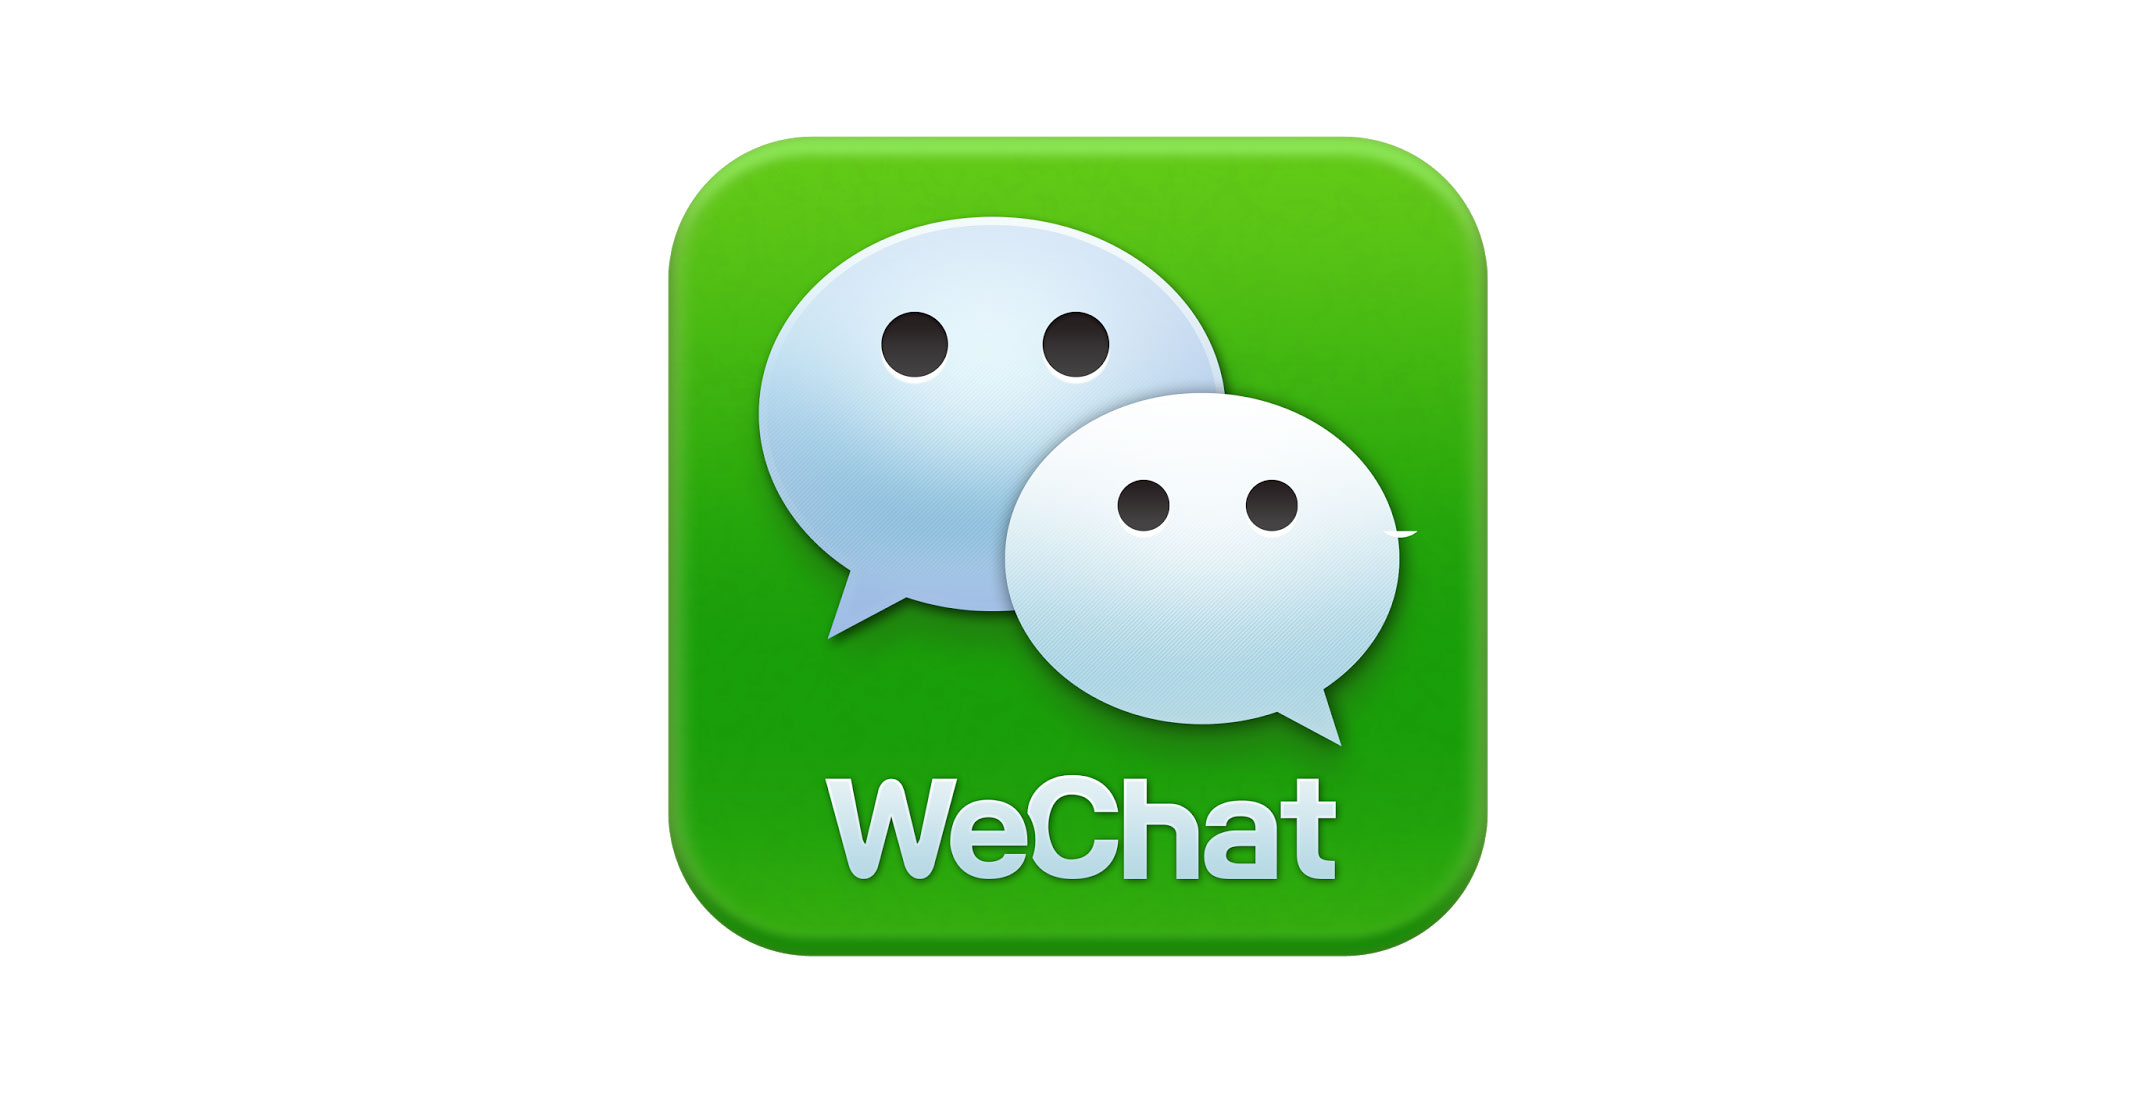 Washington turns its gaze to WeChat in China apps purge - TechCentral